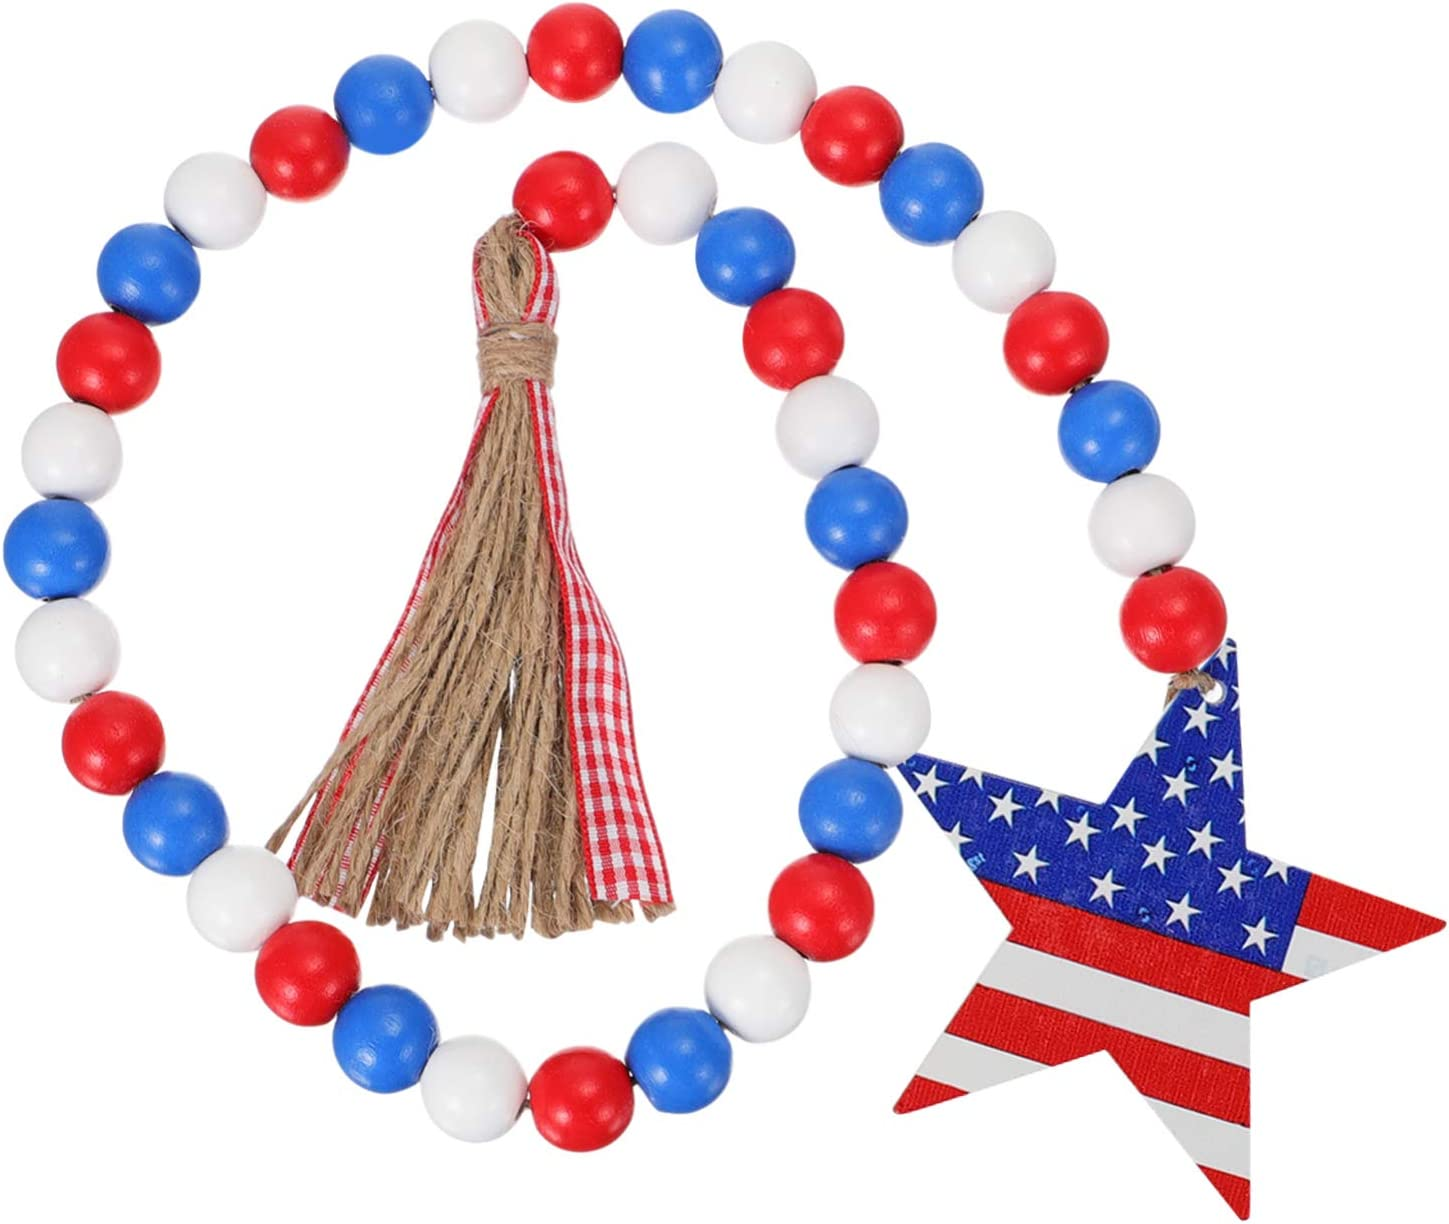 Amosfun Bead Garland red Wood White Wooden Beads for Decor- Tassle Garland Patriotic Wall Decor Wooden Bead- Independence Day Wooden Beads Pendant with- Tassel Home Hanging Pendant